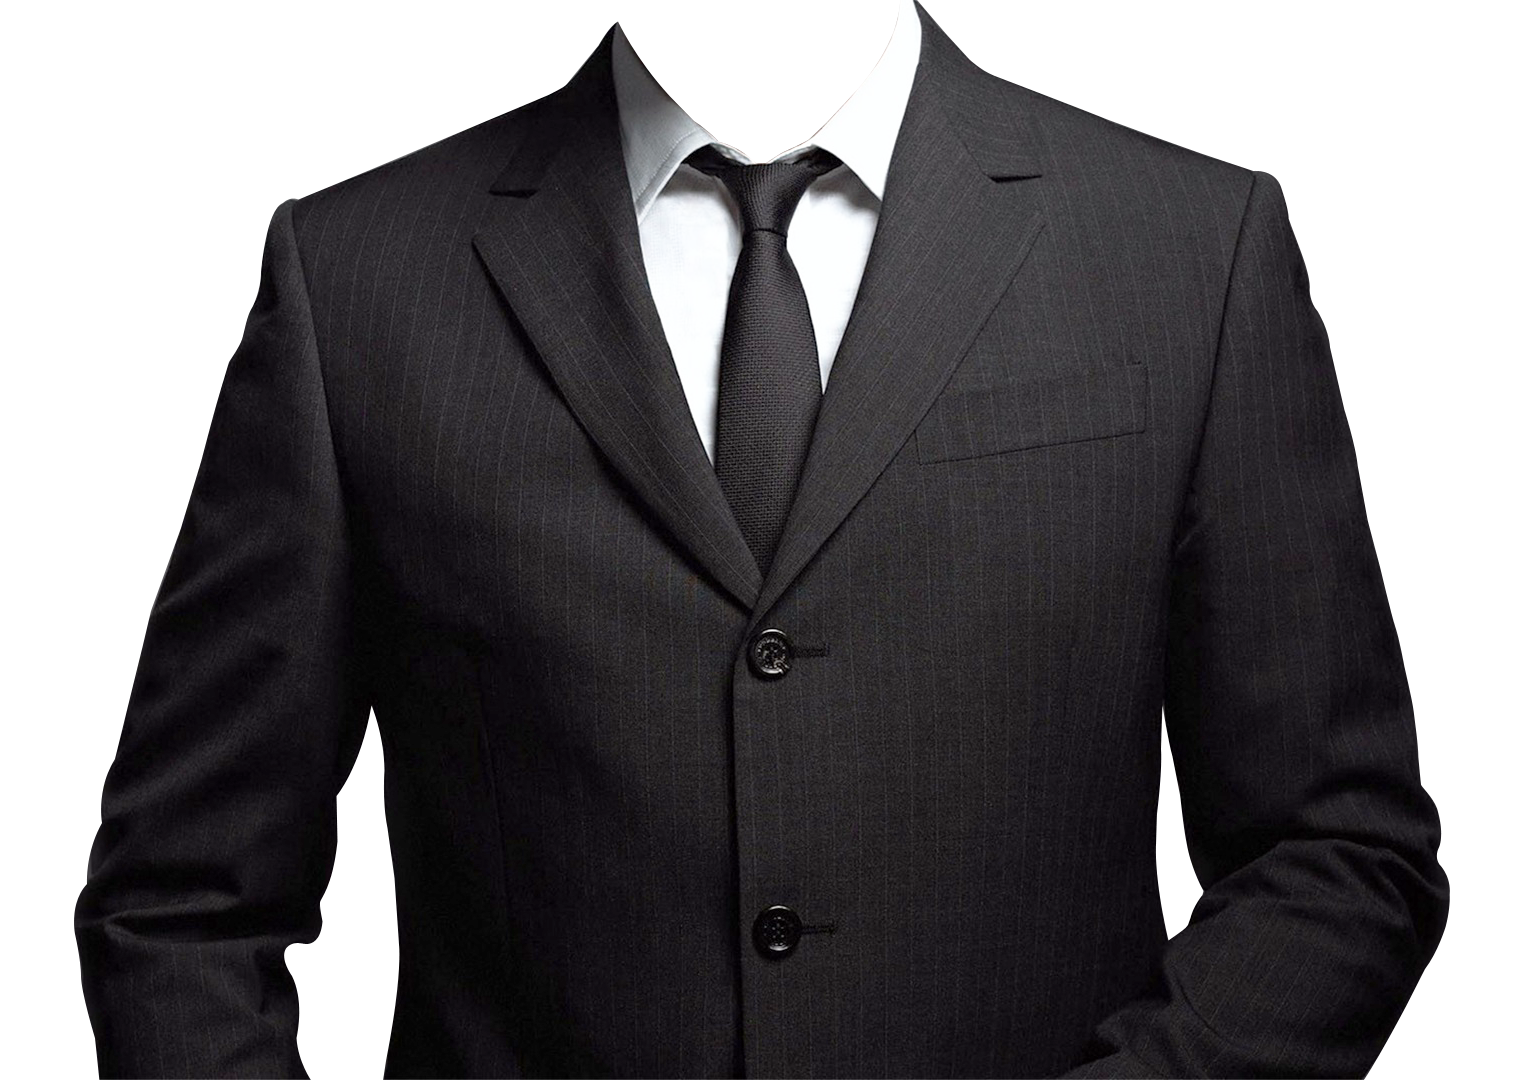 suit without tie photo - 1